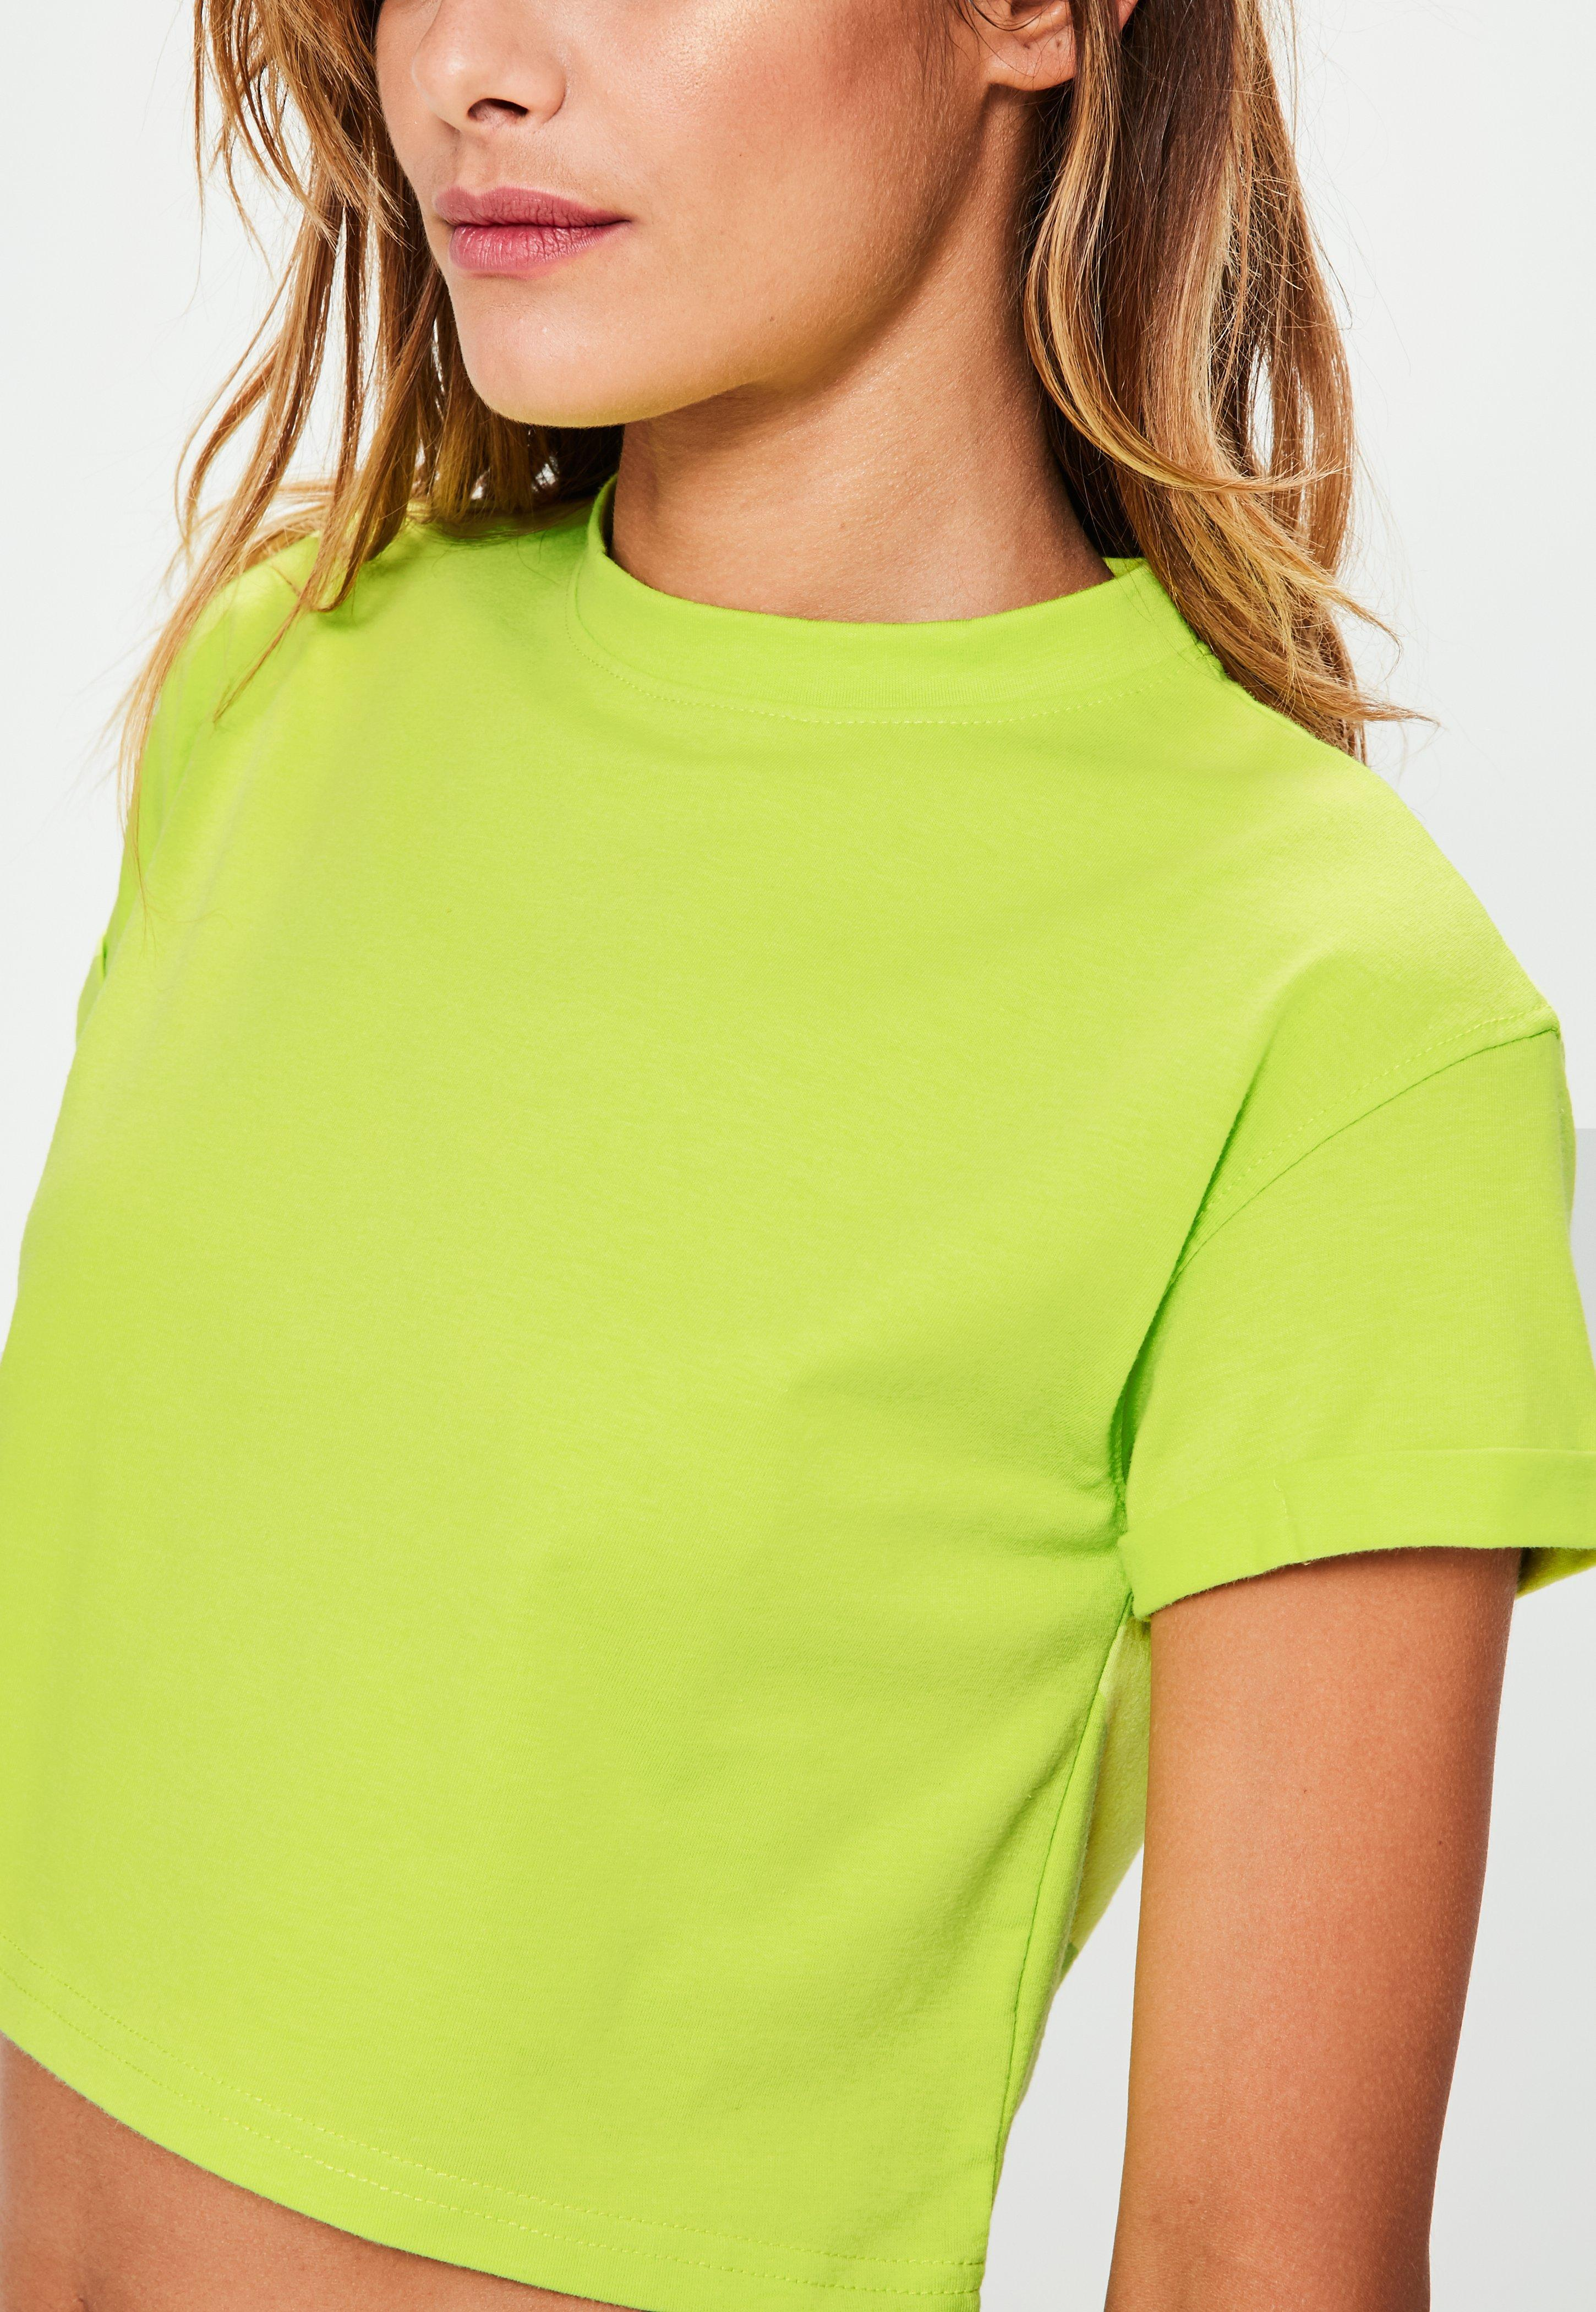 Crop Tops & Bralets Tops Jersey Tops Bralets Evening Tops Bodysuits Bardot & Off The Shoulder Tops Shirts & Blouses Day Tops Cami & Swing Tops Green Grey Khaki Light Medium Metallics Multi Navy Neon Nude Orange Pink Purple Red White Yellow .